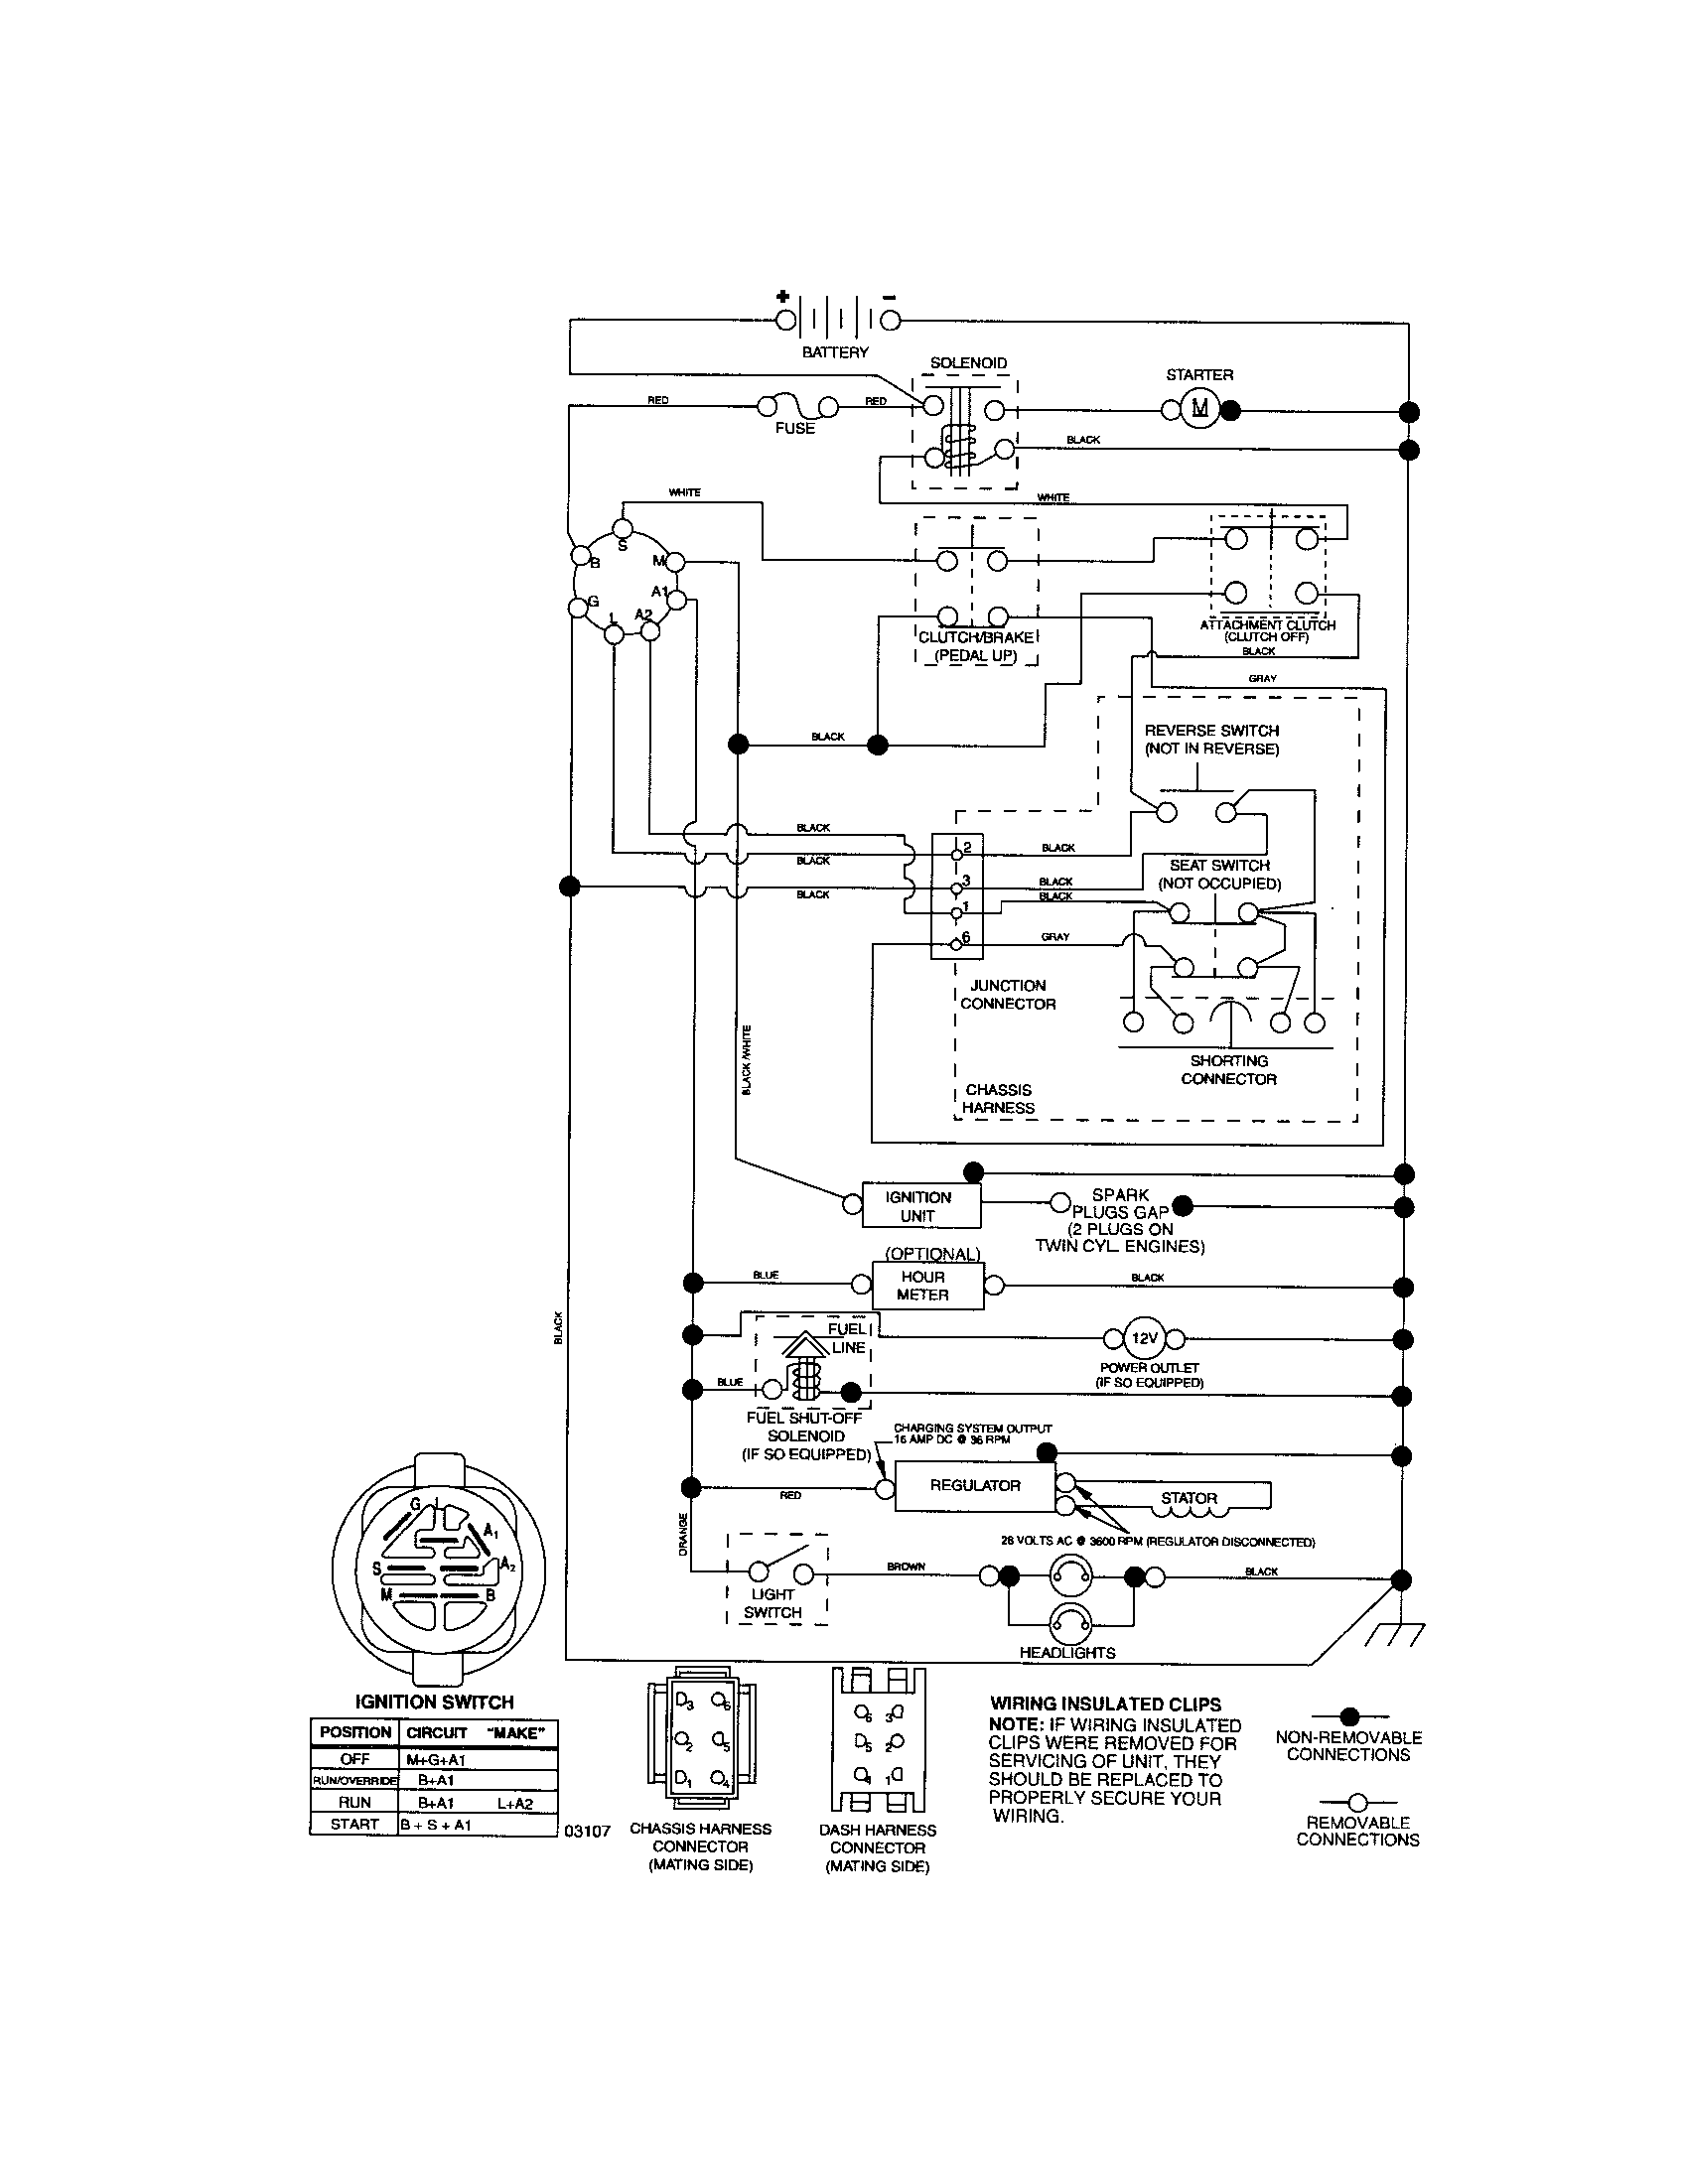 6af5f1447fd13c8443376822ddc1e105 craftsman riding mower electrical diagram wiring diagram Schematic of Briggs and Stratton 16 HP Vanguard Engine at panicattacktreatment.co